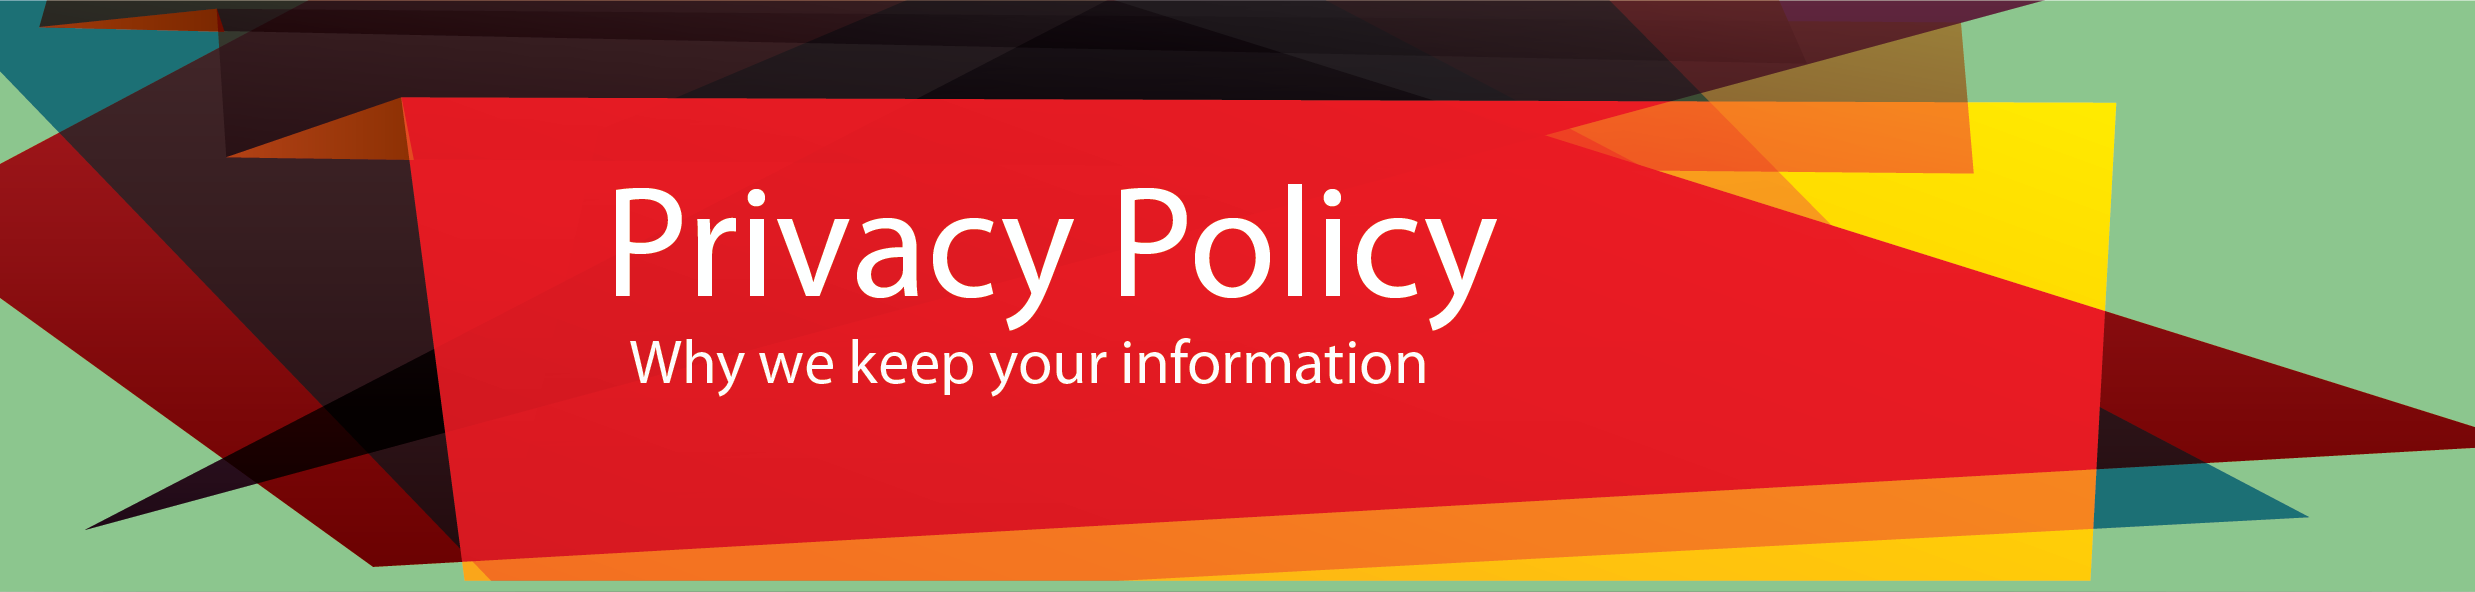 Simple Privacy Policy   Source